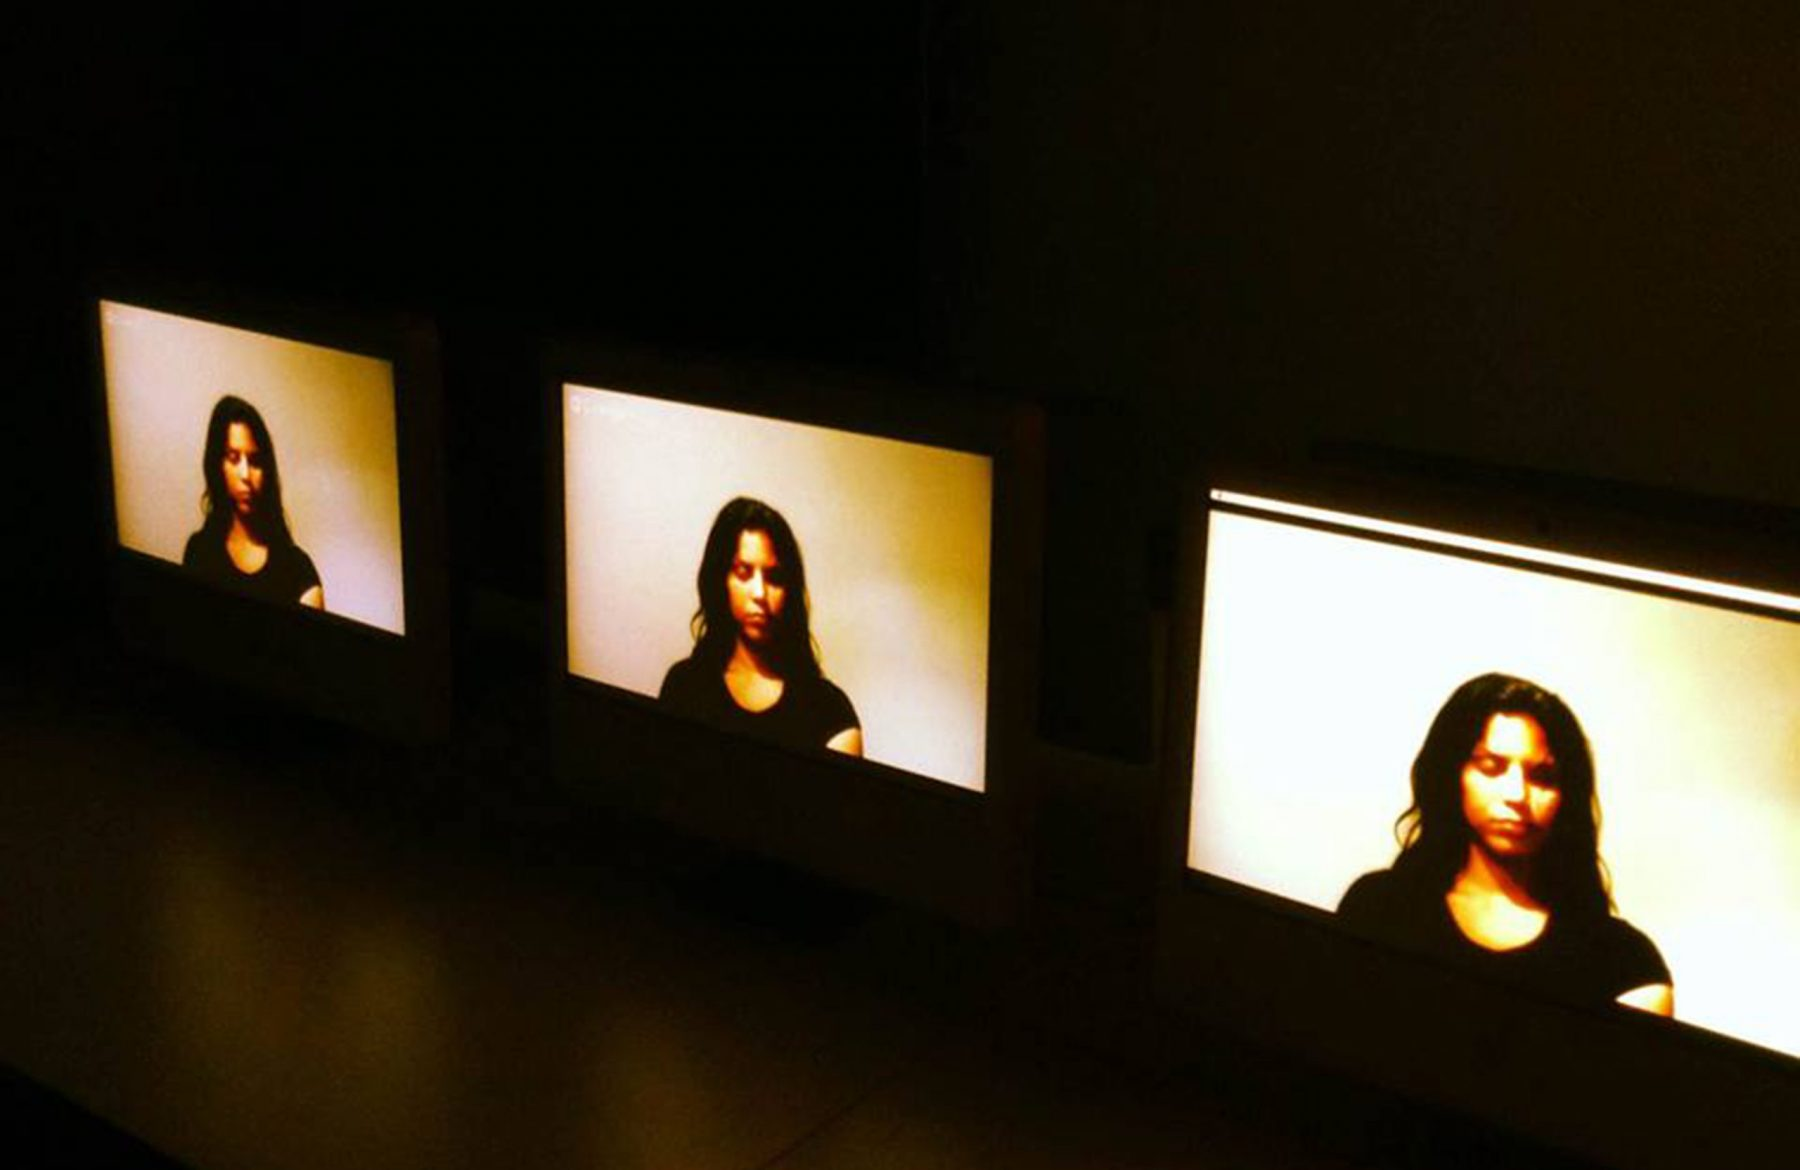 4. A drop of honey, 2013 - Performance, Opening (Naivy Perez)